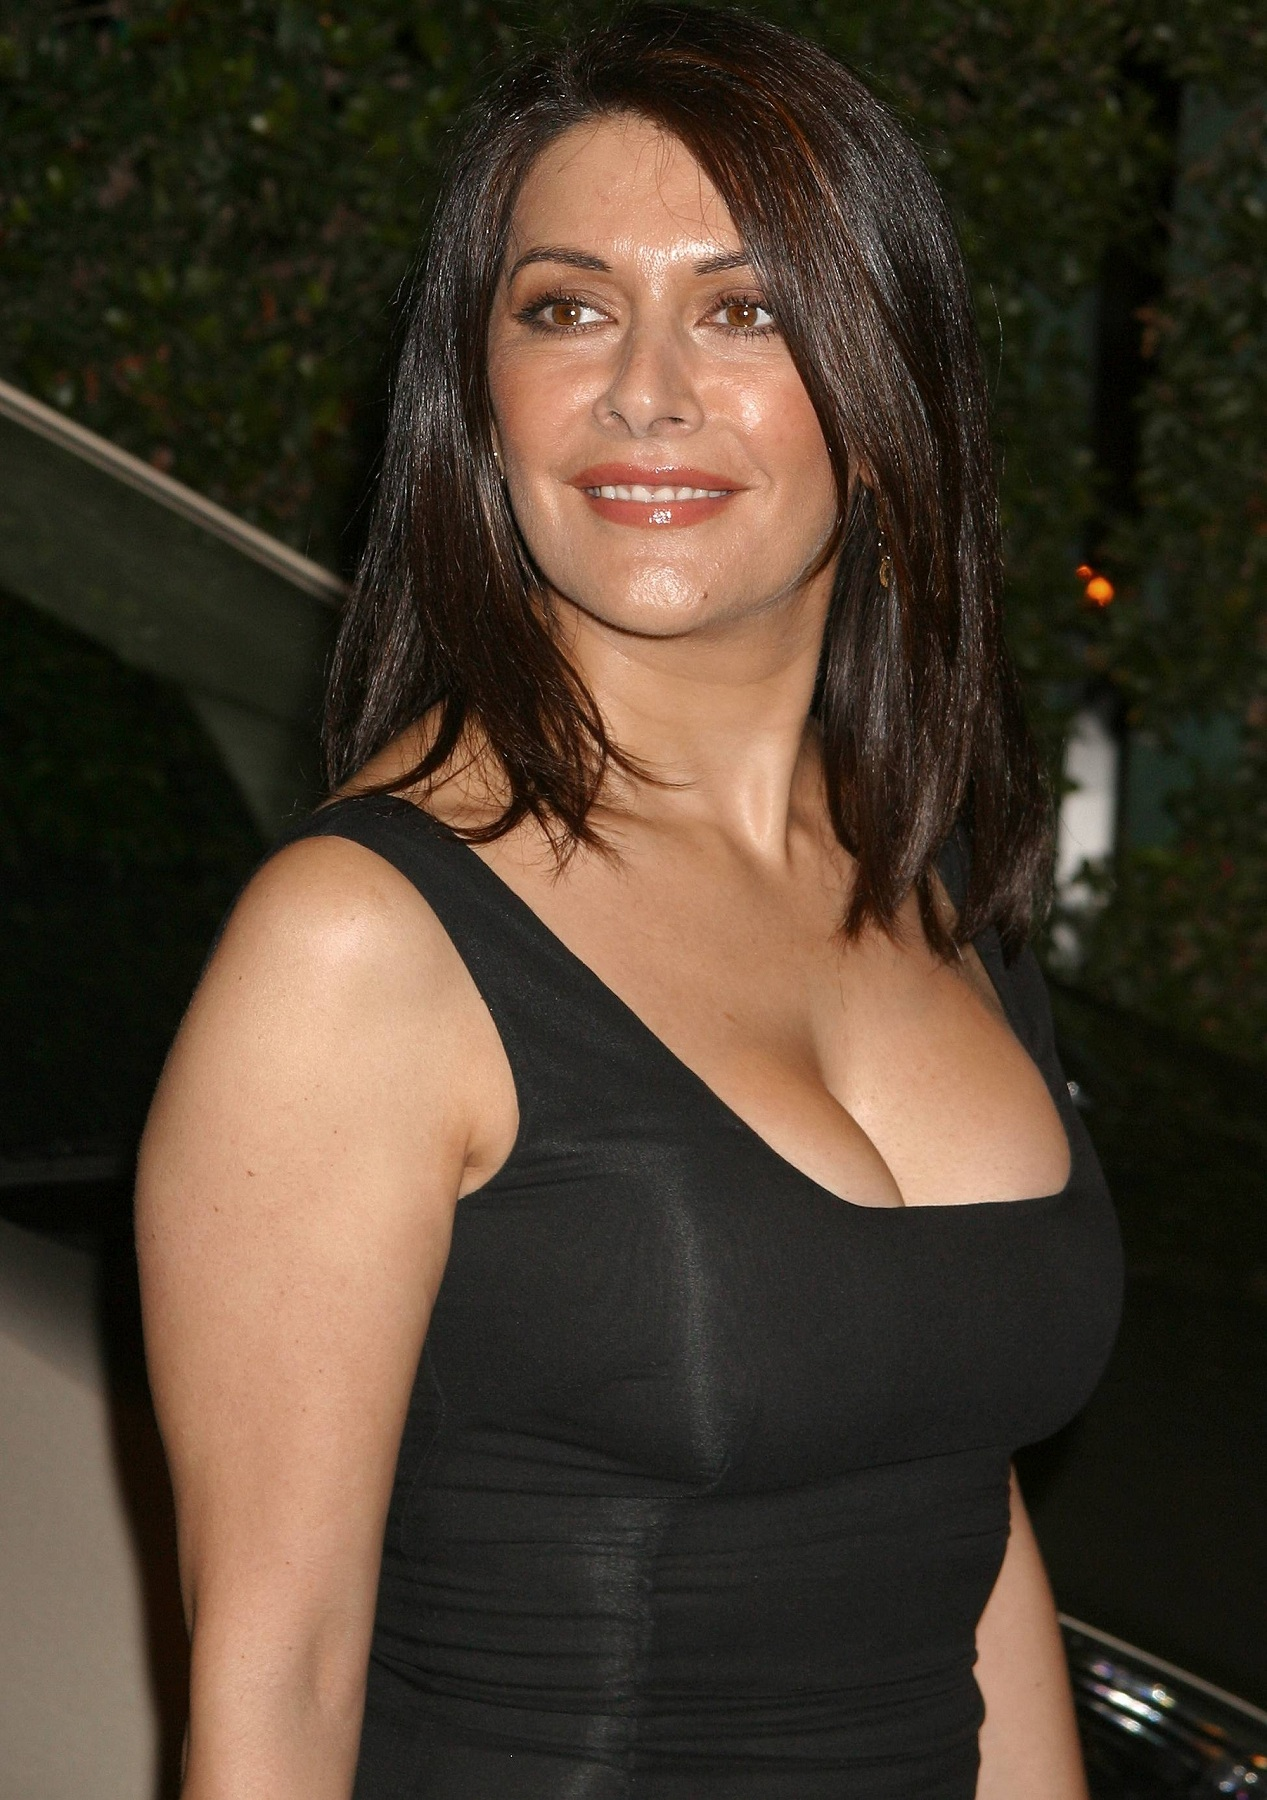 Marina Sirtis Hot Bikini Pictures - Show Her Sexy Body And